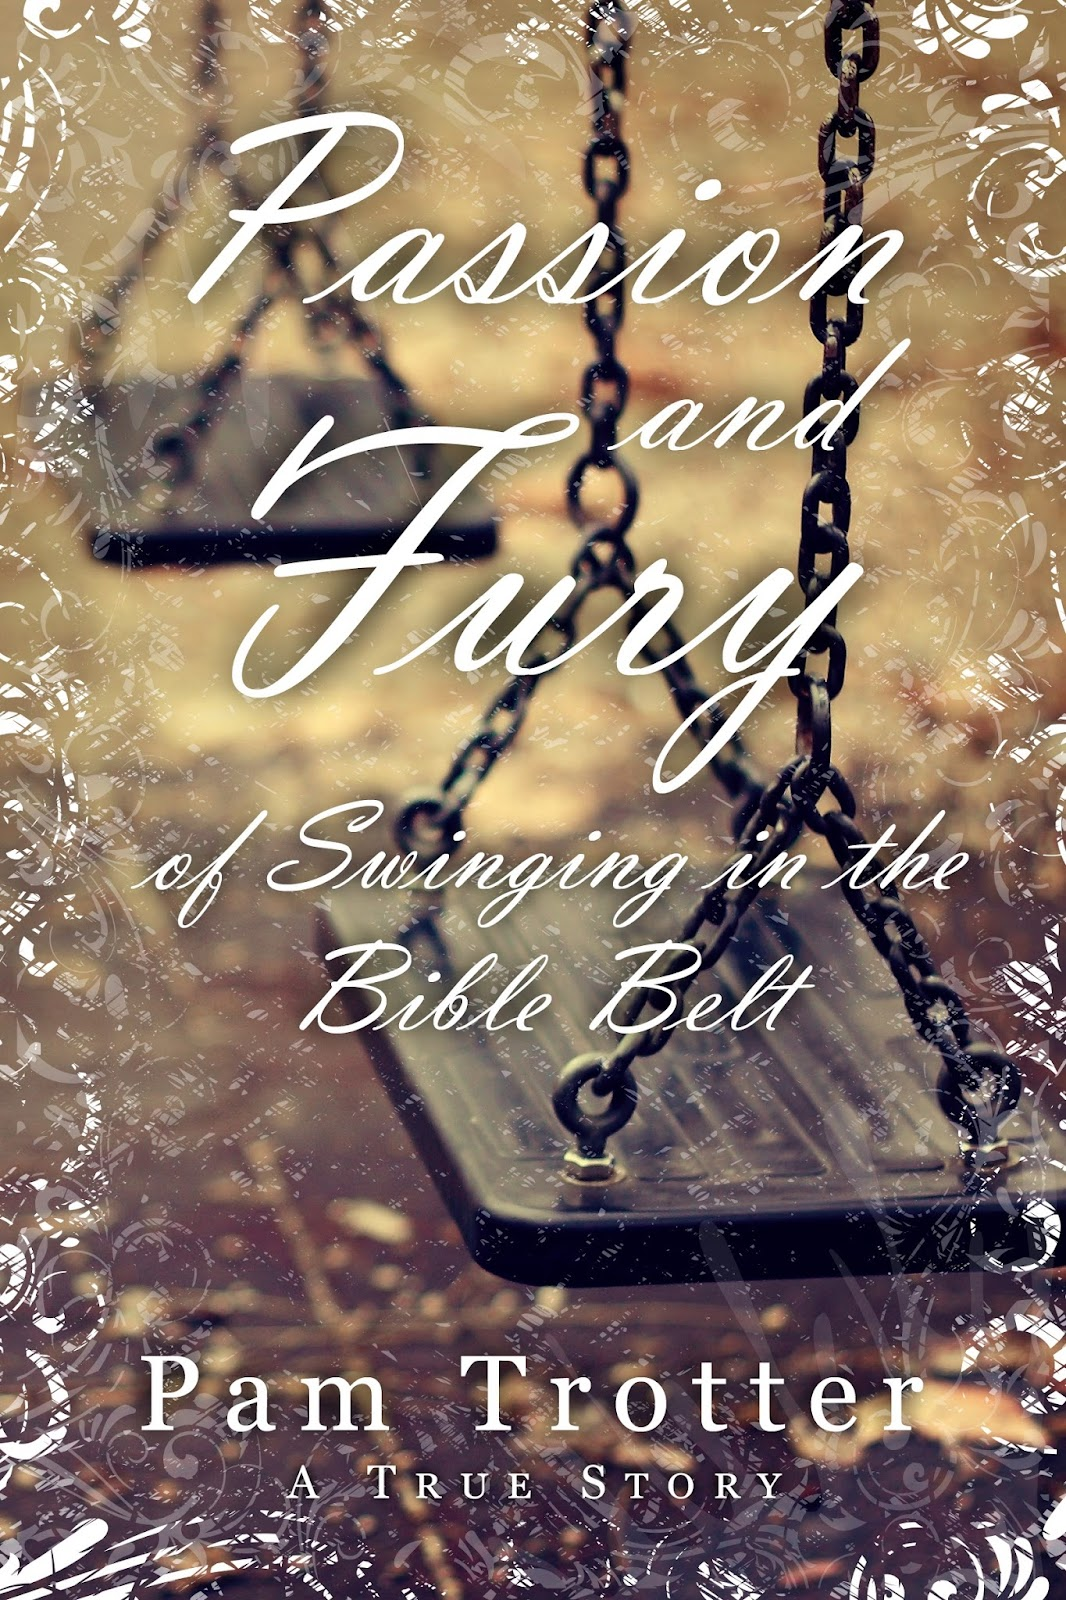 Passion-and-Fury-ebook cover book 2.jpg